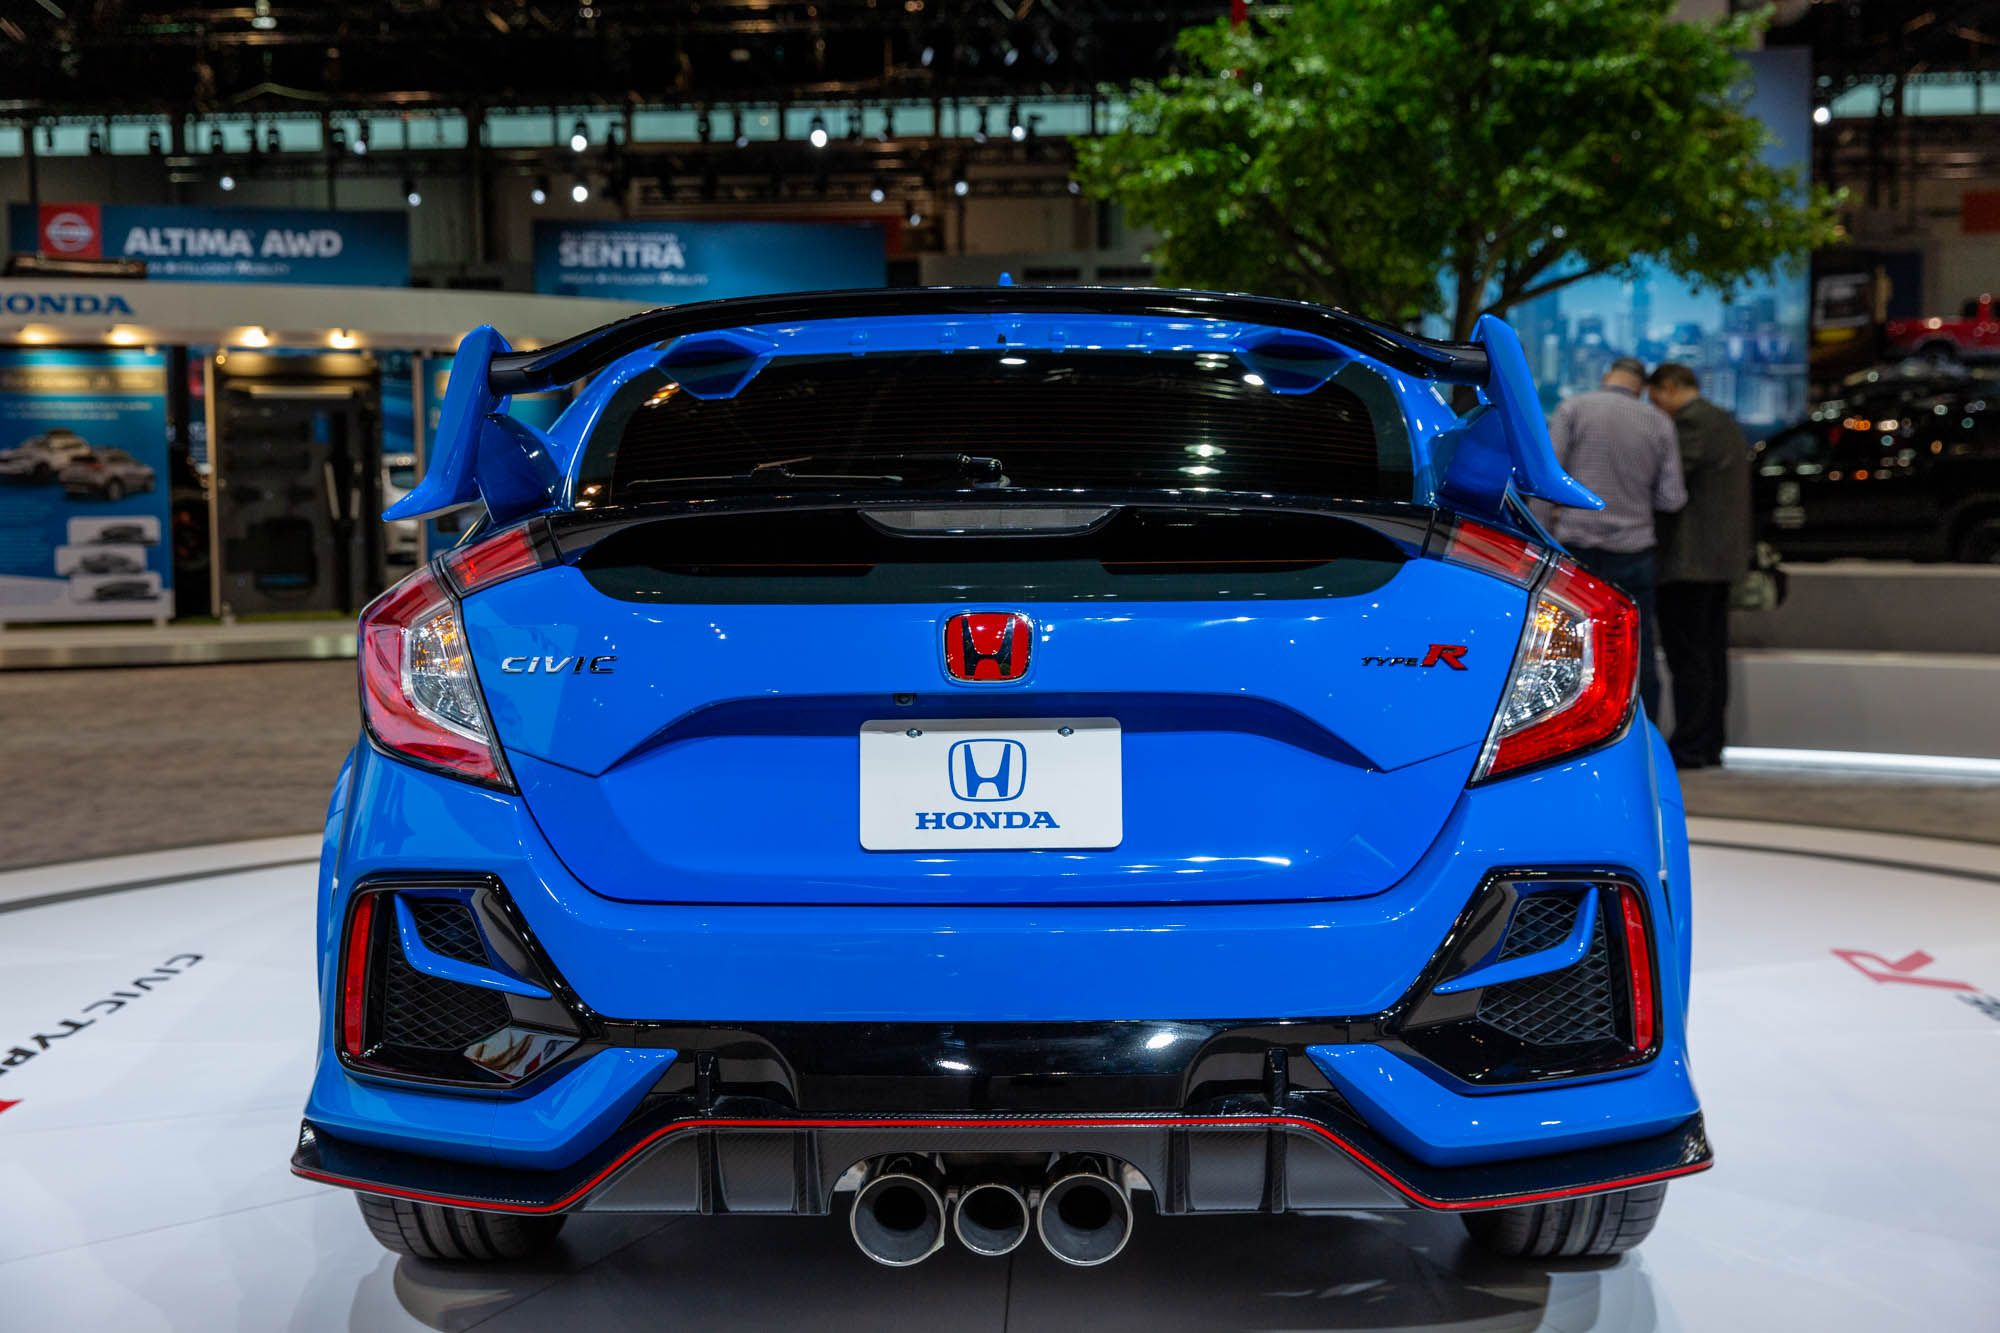 2020 Honda Civic Type R brings upgrades, trackfocused